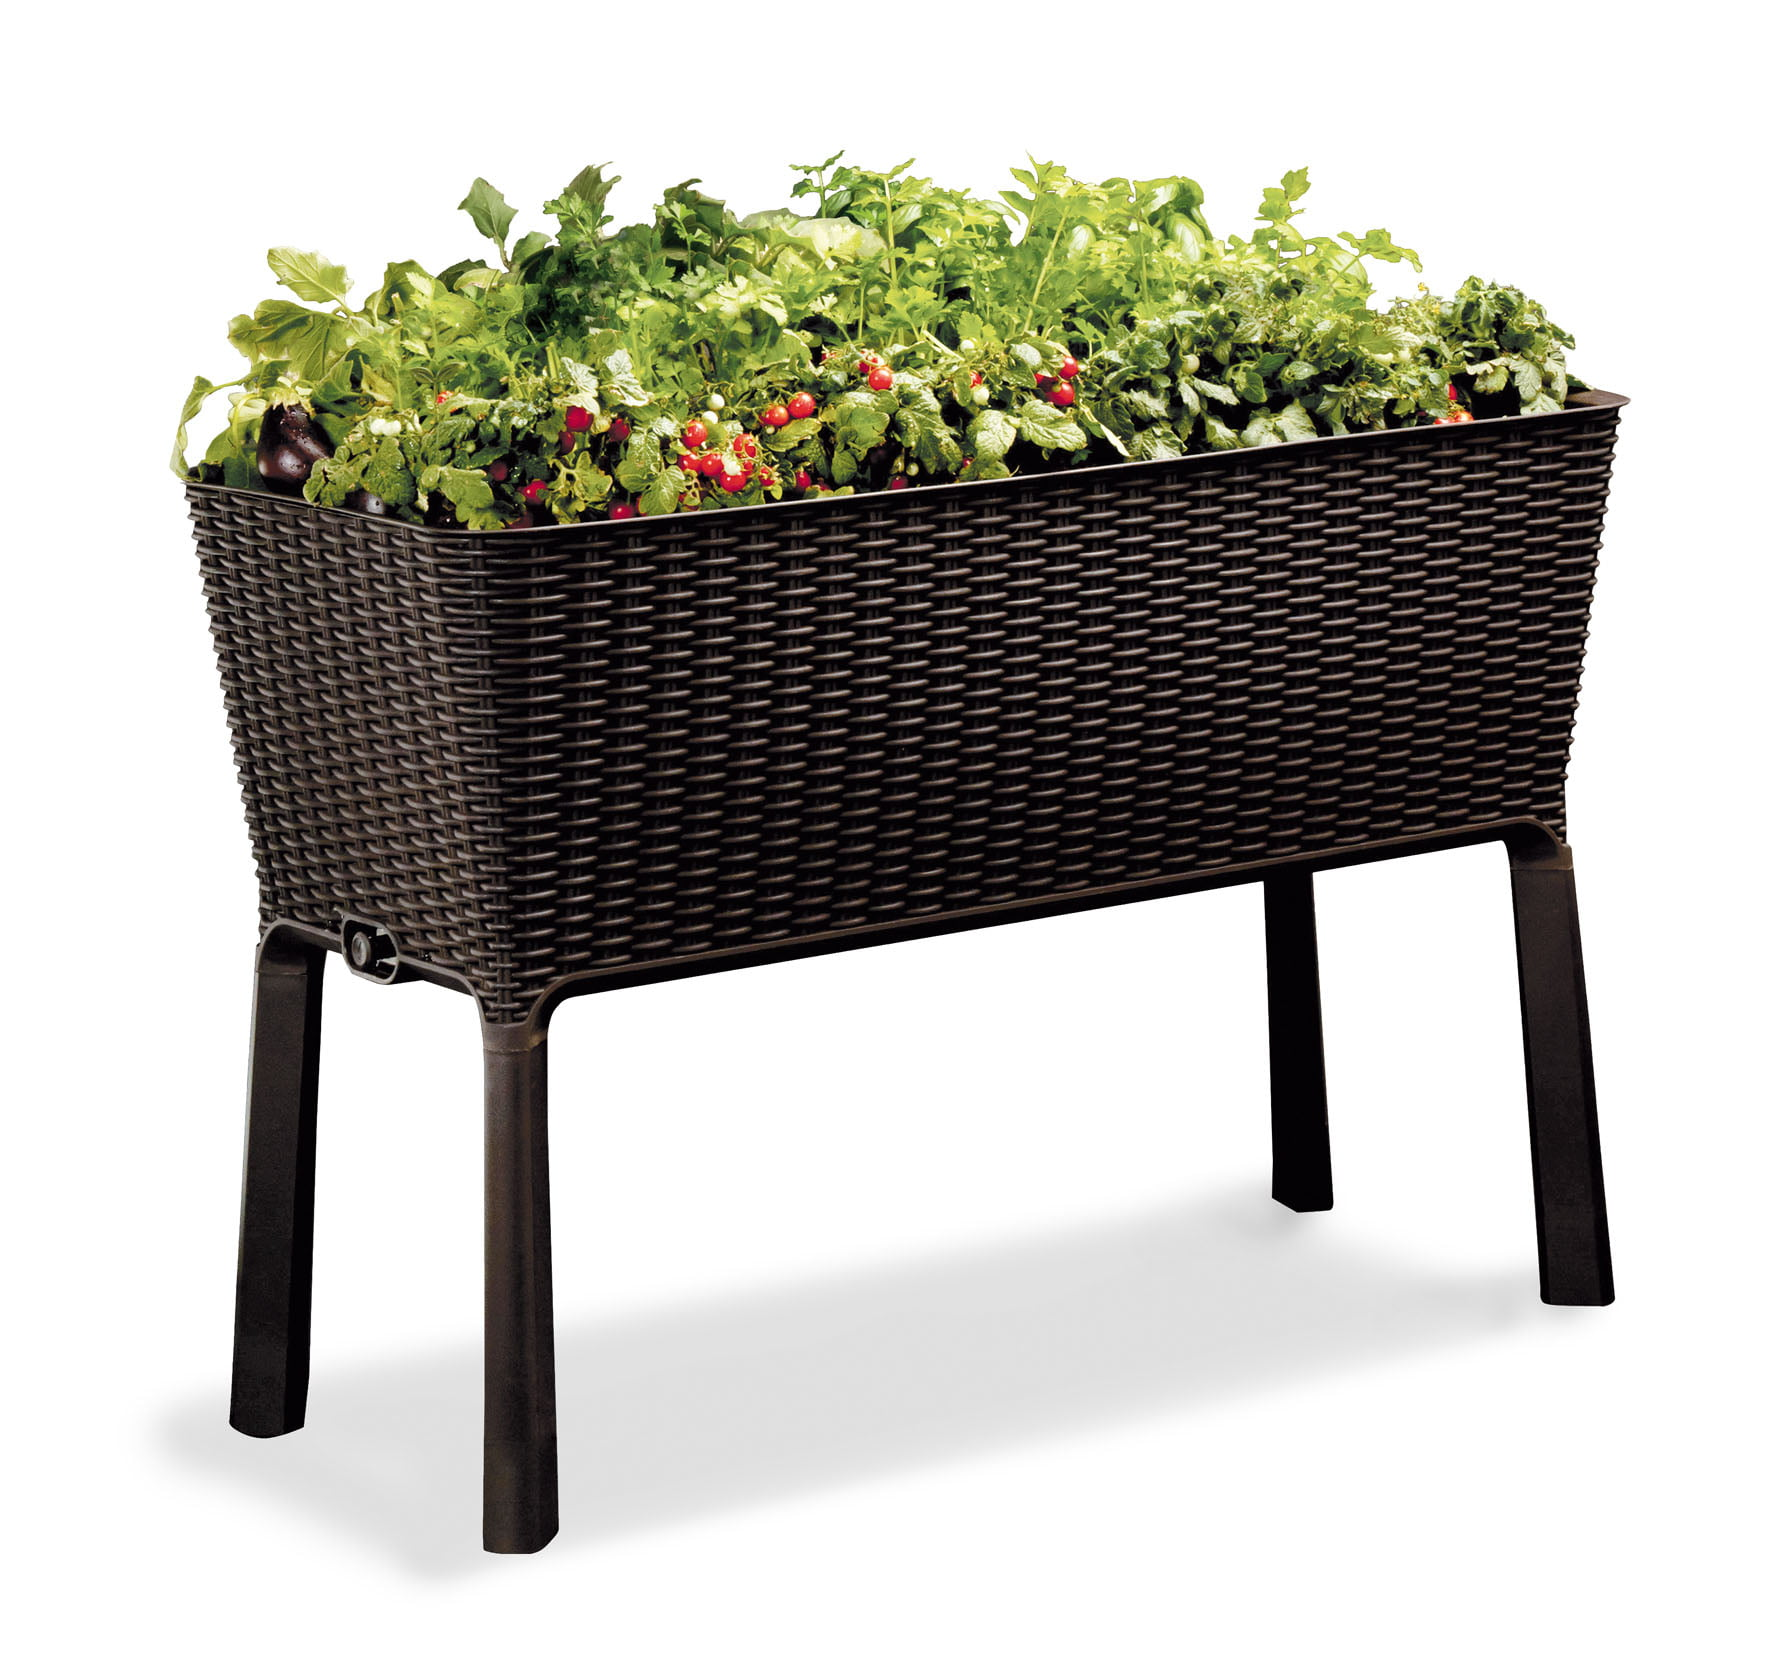 Keter Easy Grow Resin Elevated Garden, All Weather, Self-Watering Plastic Planter, Brown Rattan by Keter Plastics, LTD